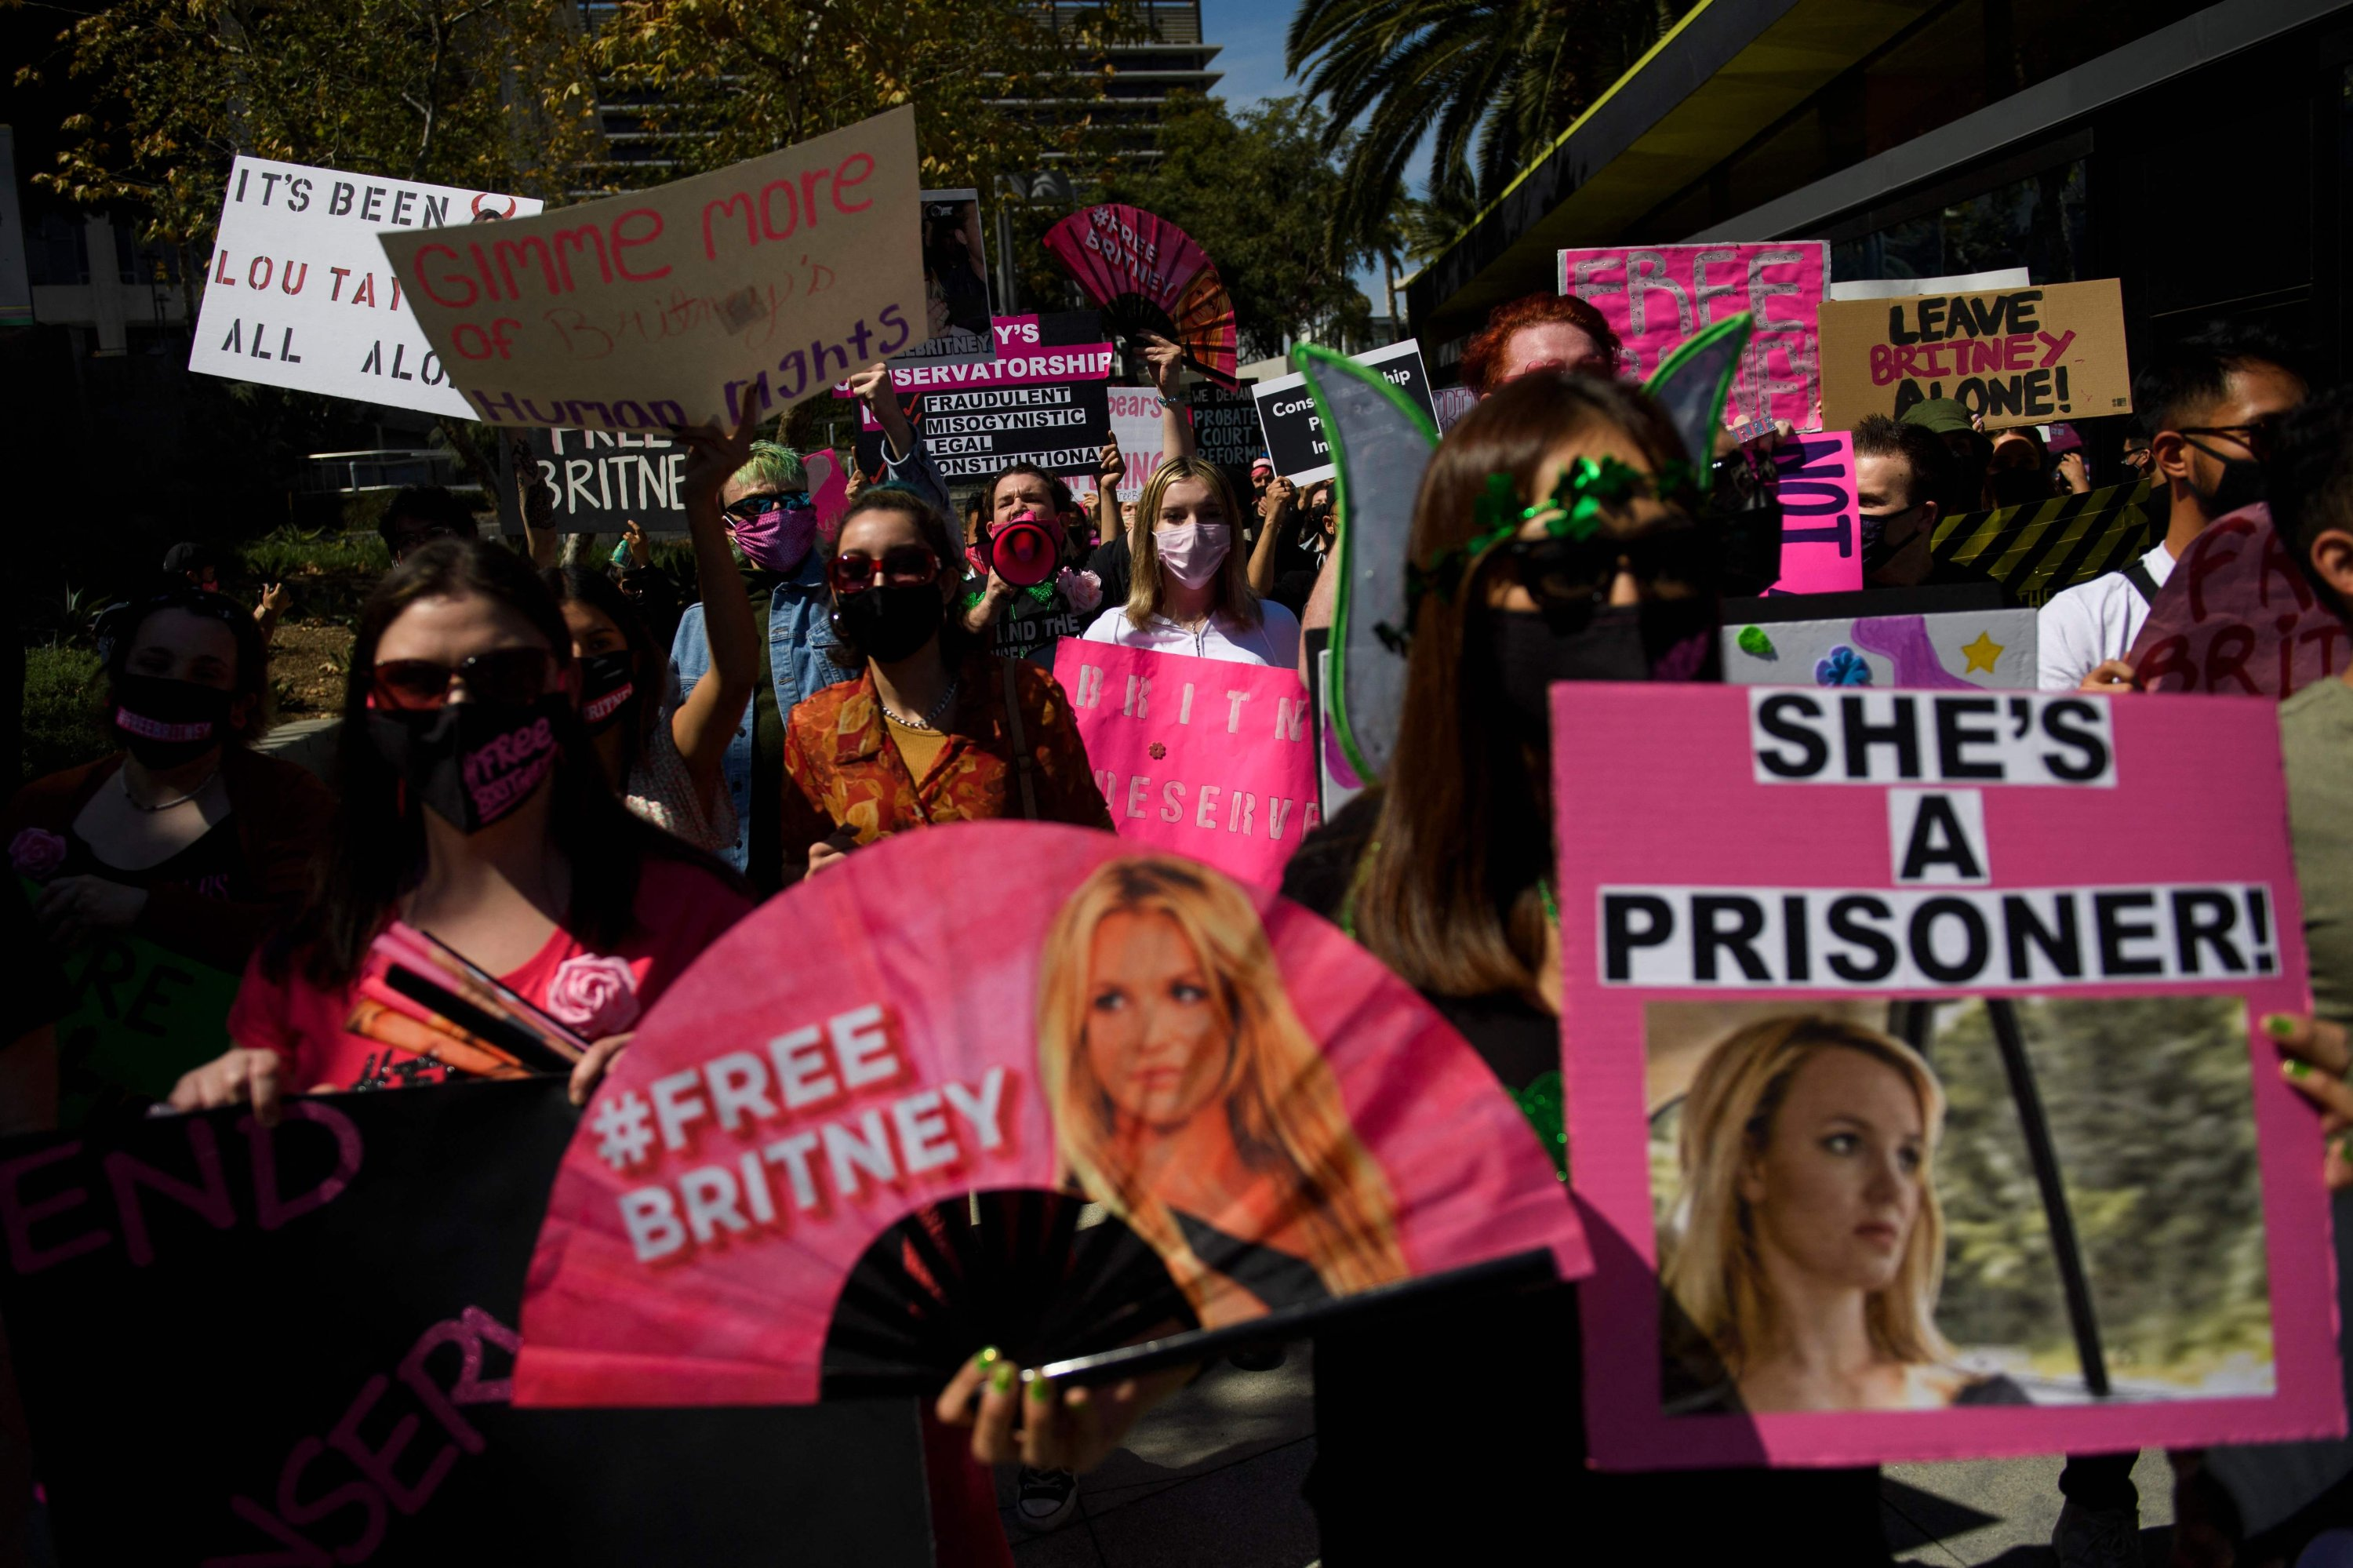 In this file photo, supporters of the FreeBritney movement rally in support of musician Britney Spears following a conservatorship court hearing in Los Angeles, California, March 17, 2021. (AFP Photo)